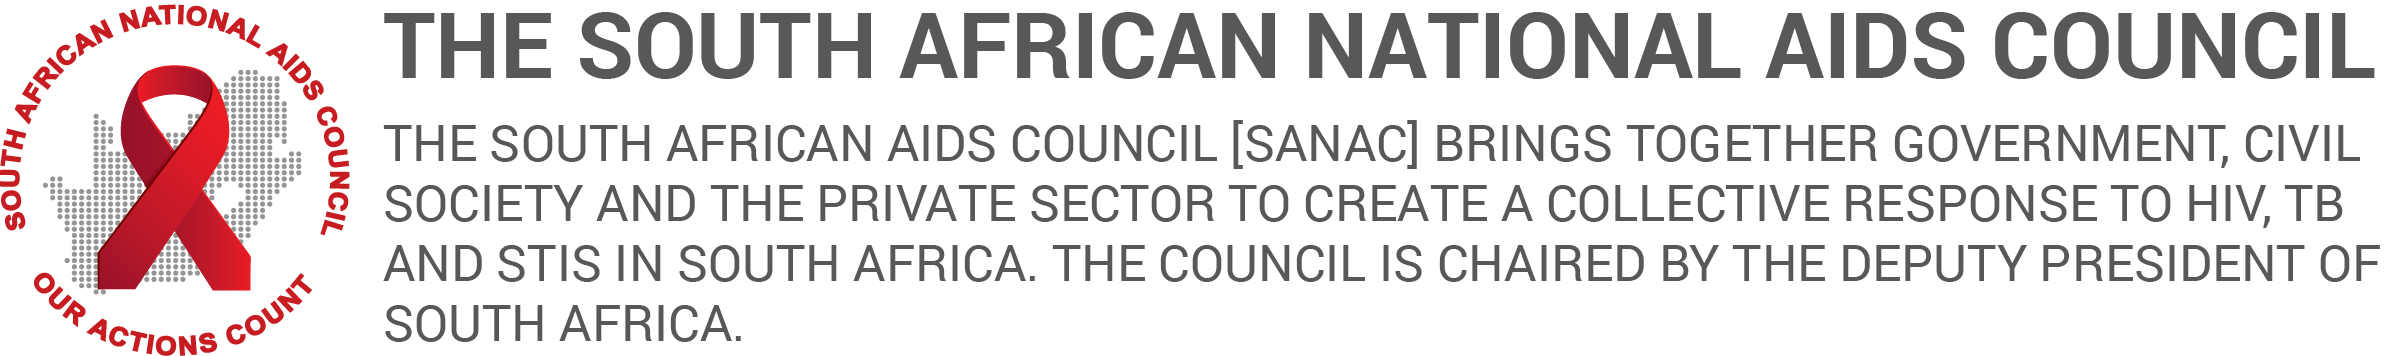 South African National AIDS Council | SANAC